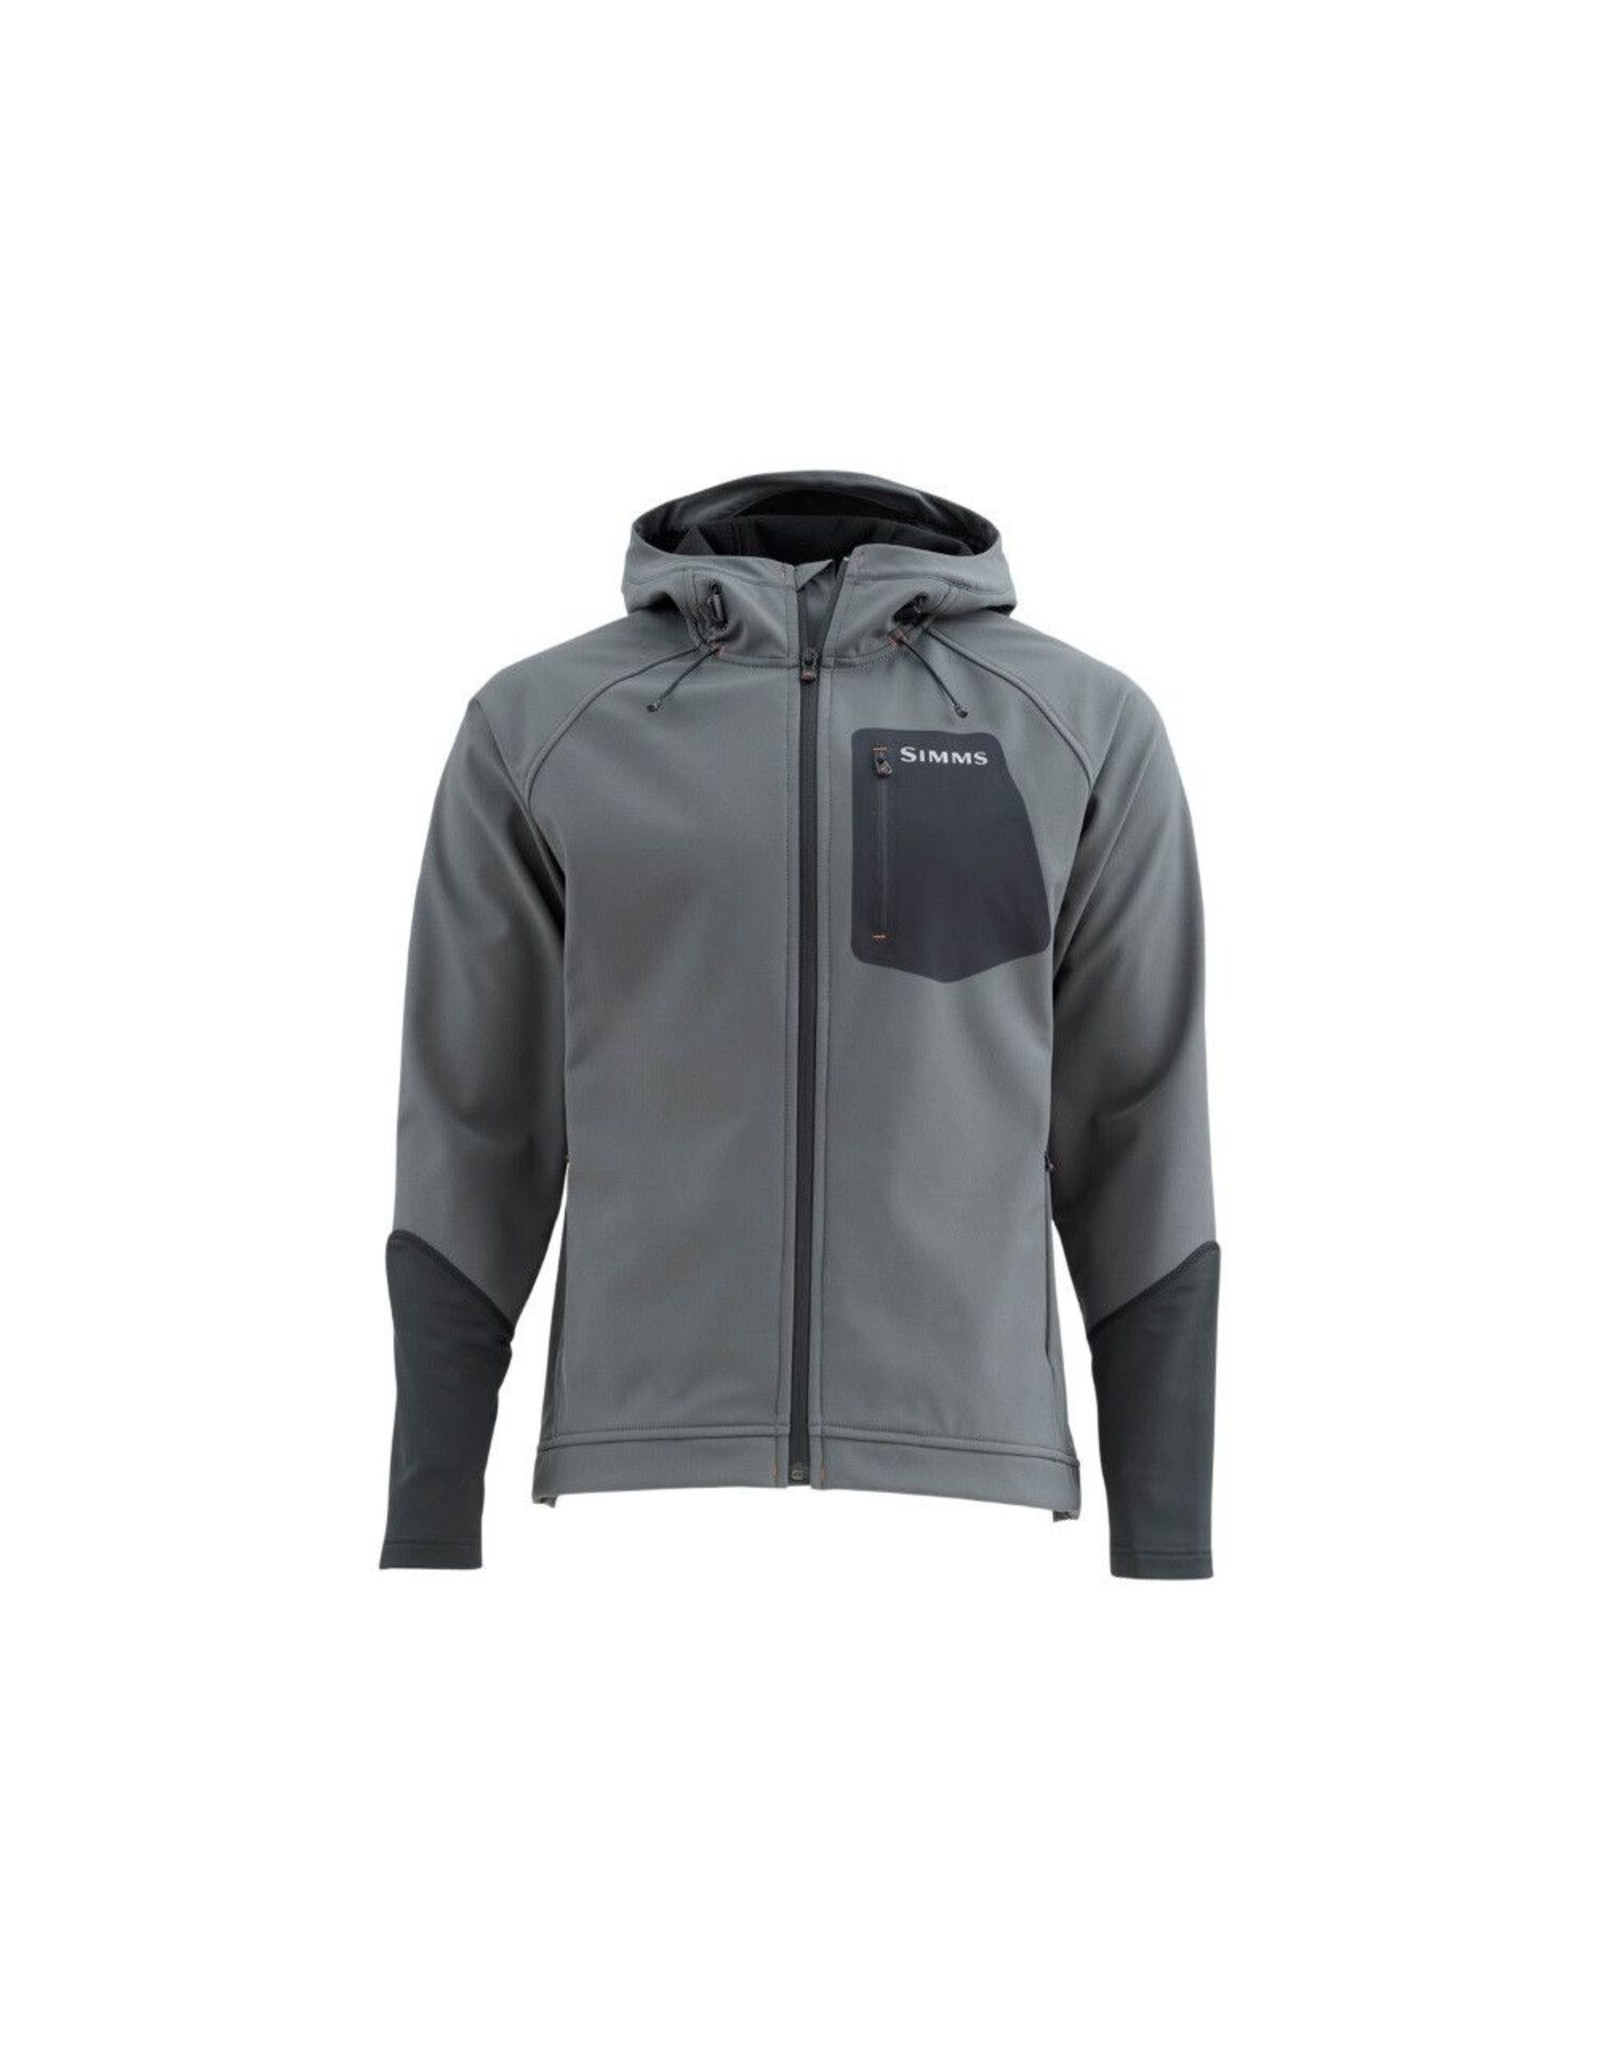 A technical hoody with water resistant cuffs and boat-to-bar style.